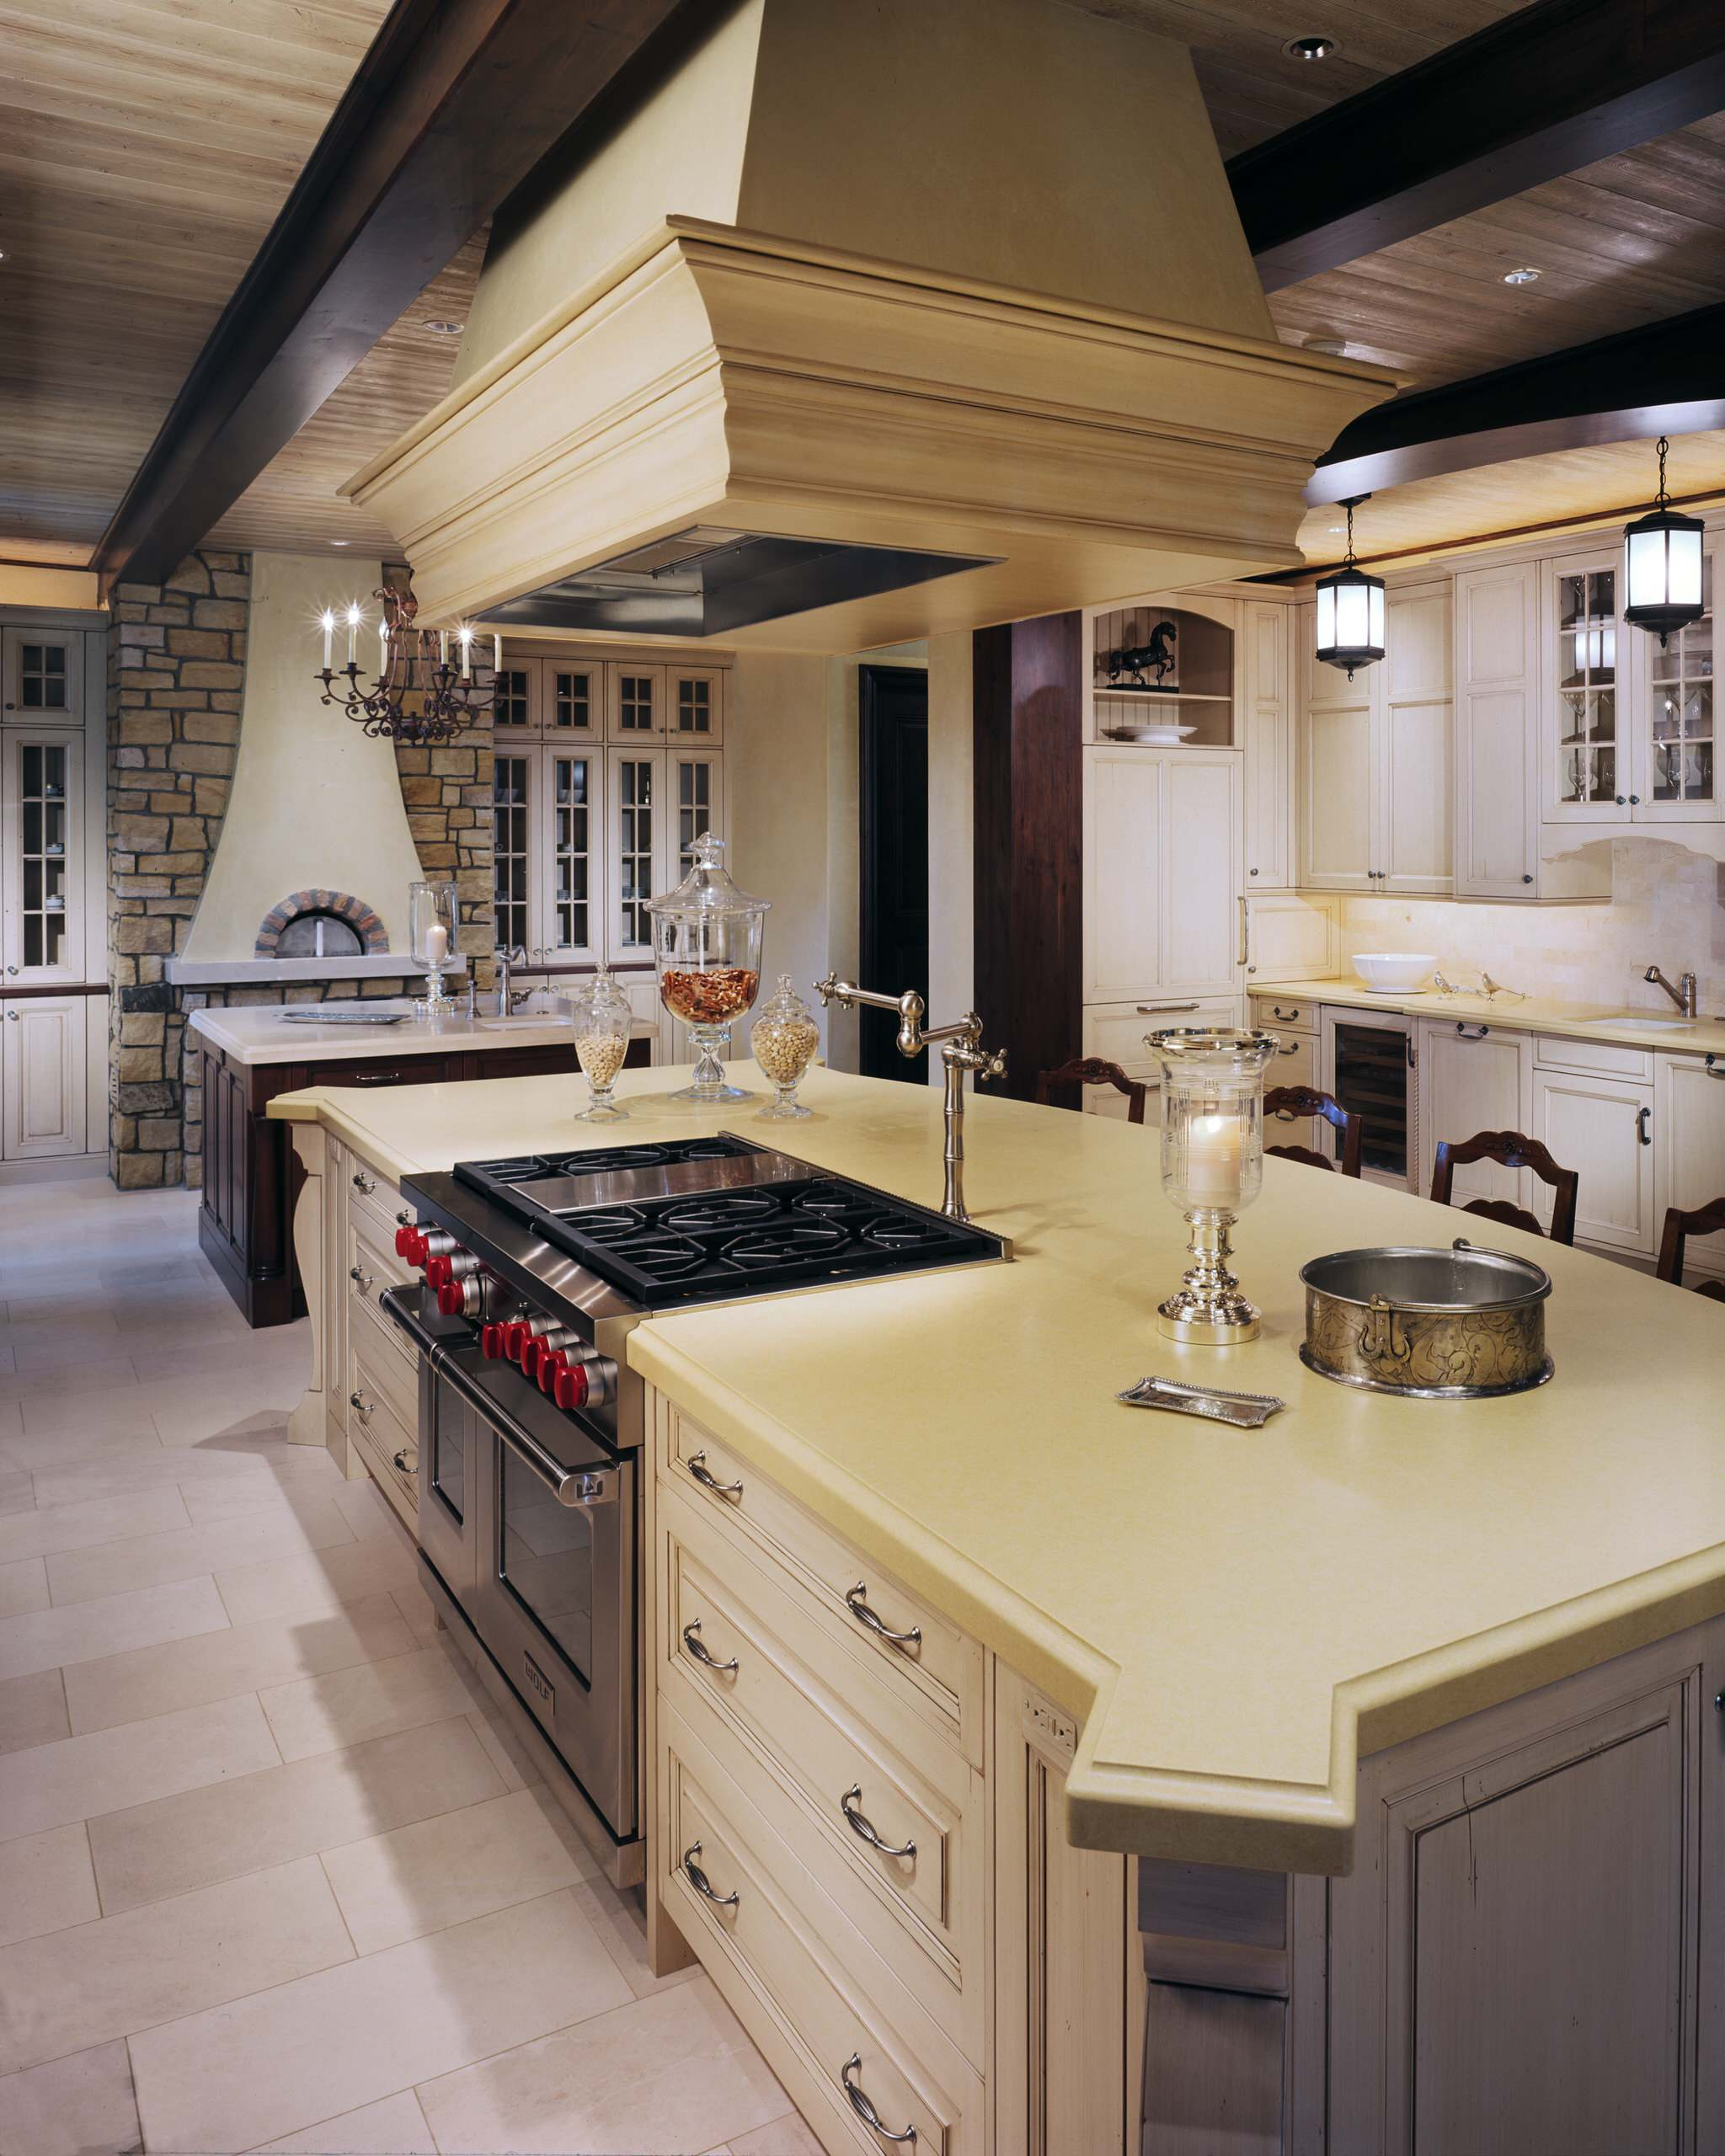 Pot Filler for Inspiring Water Instalation Ideas: Custom Kitchen Islands With Pot Filler And Copper Range Hoods In Traditional Kitchen With Black Chandelier And Pendant Lighting Plus Sconces Also Laminate Tile Flooring